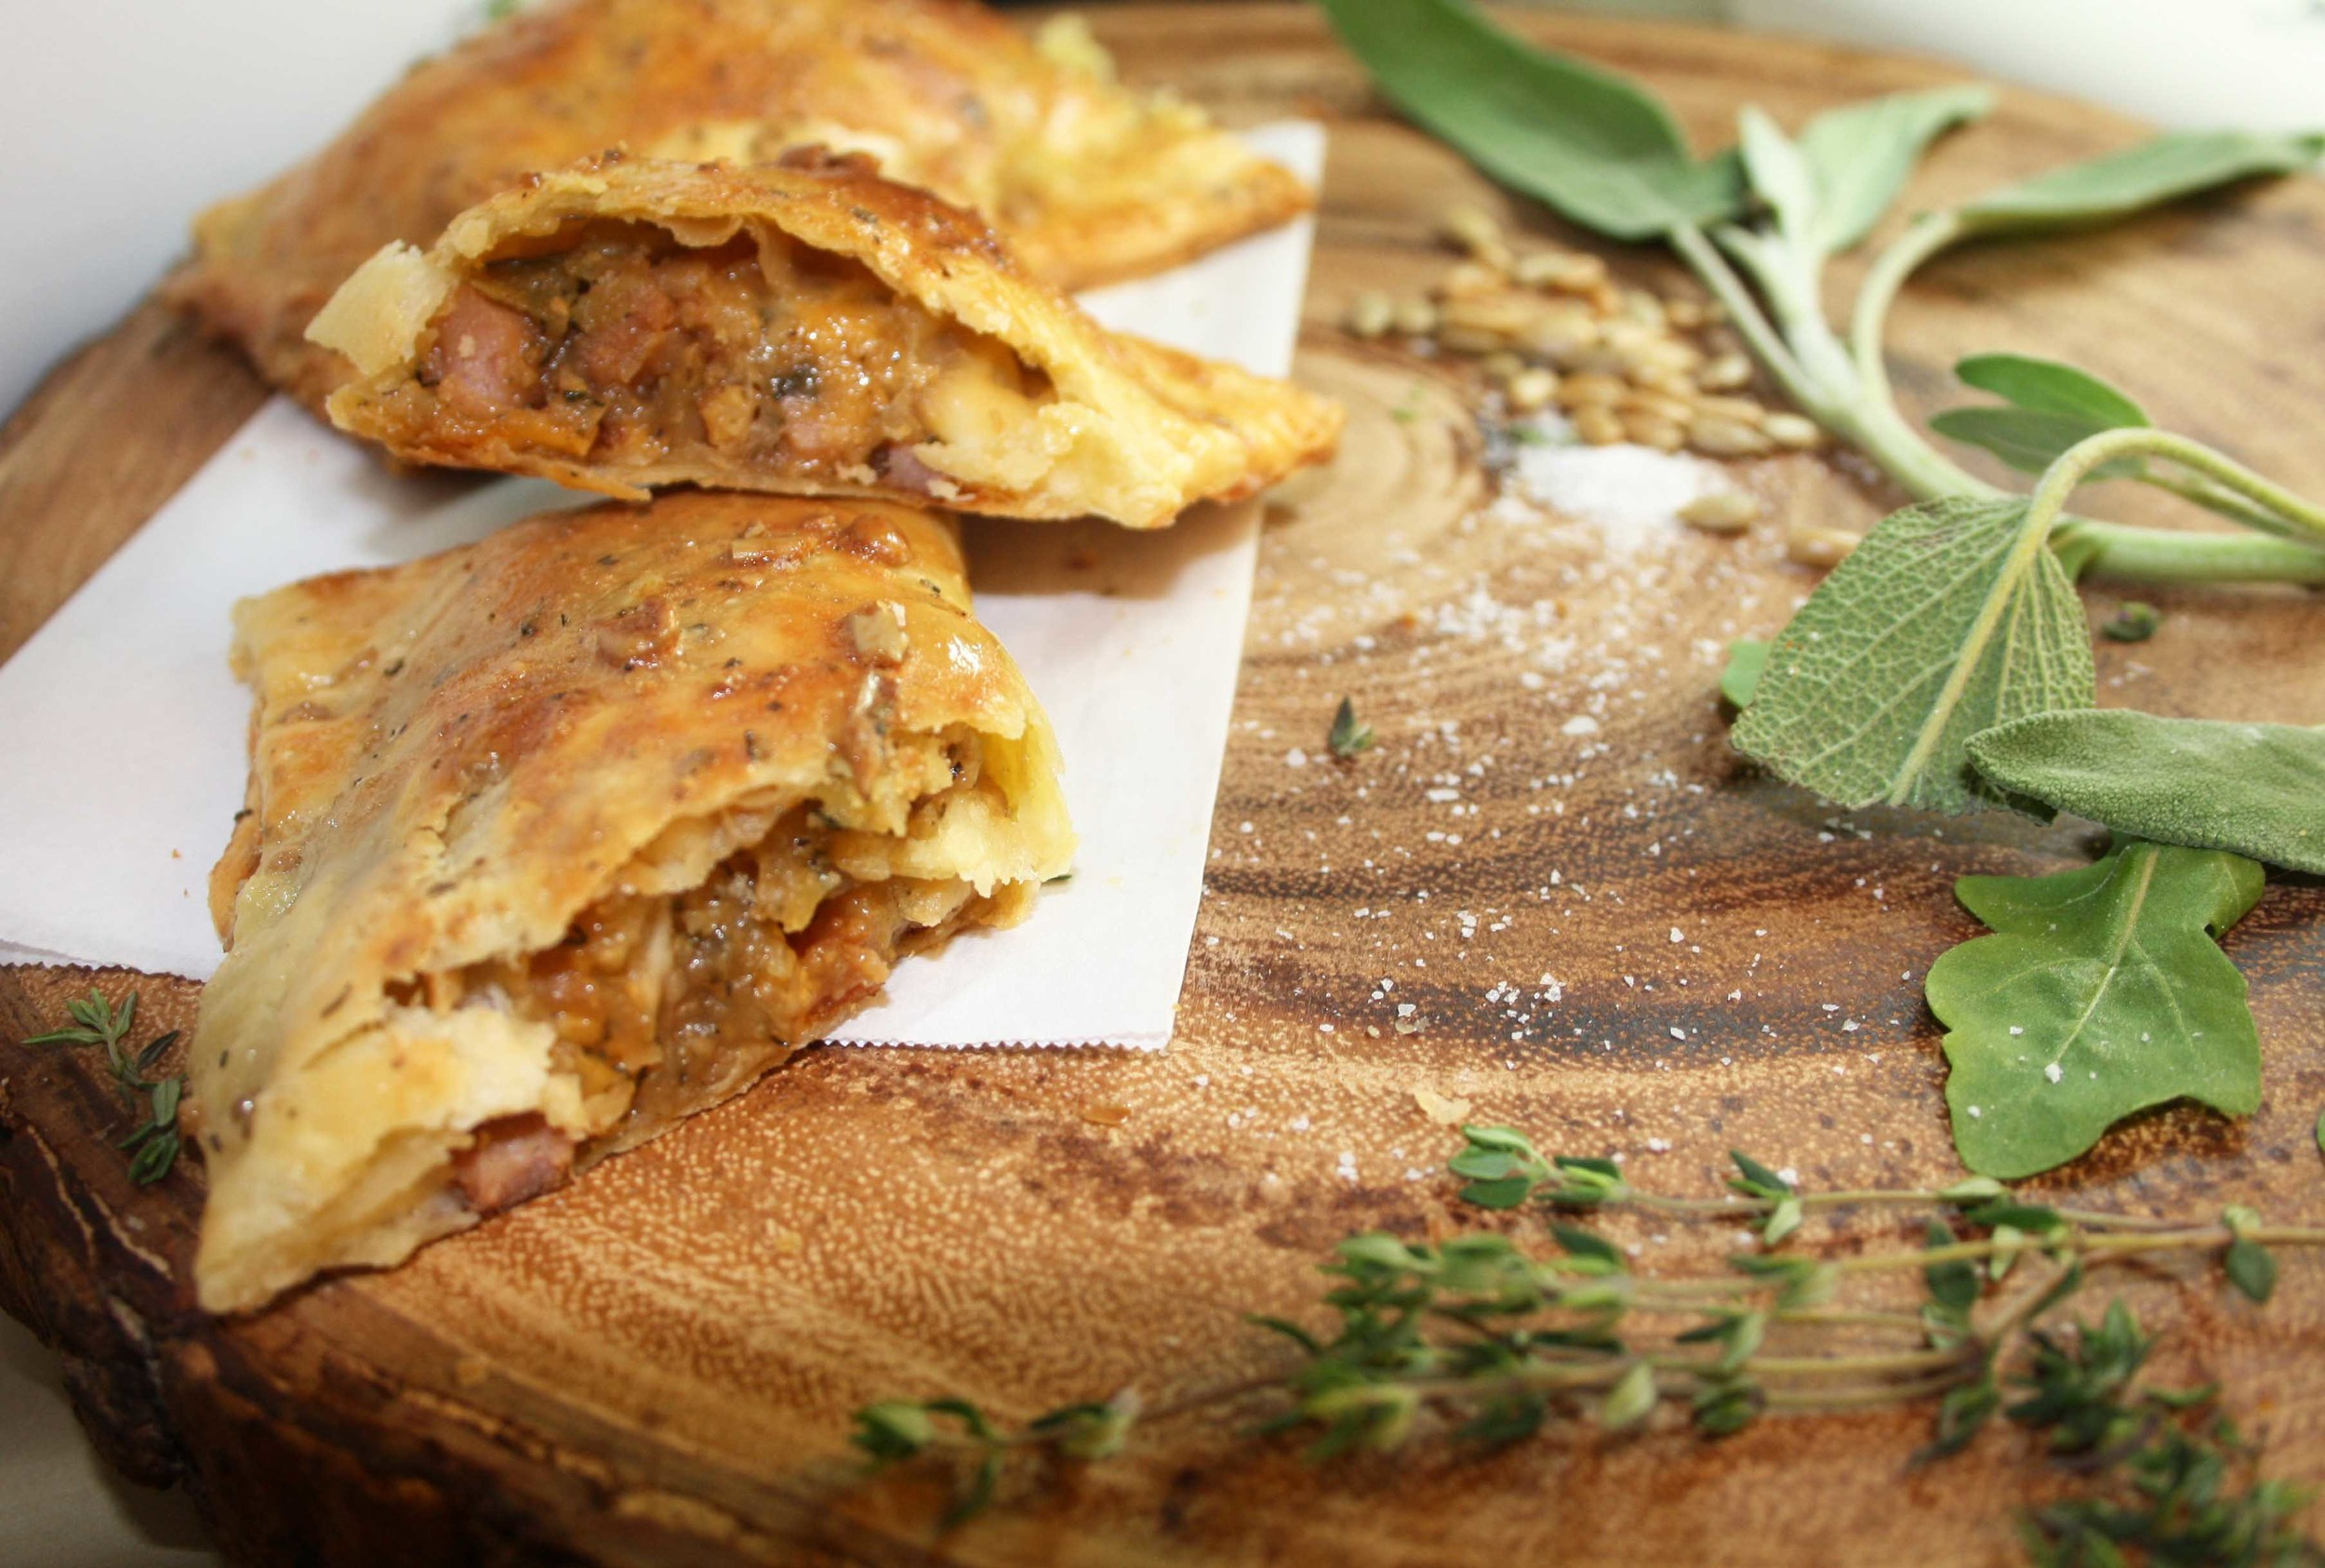 Canuck empanadas with peameal bacon, savoury potatoes and cheddar